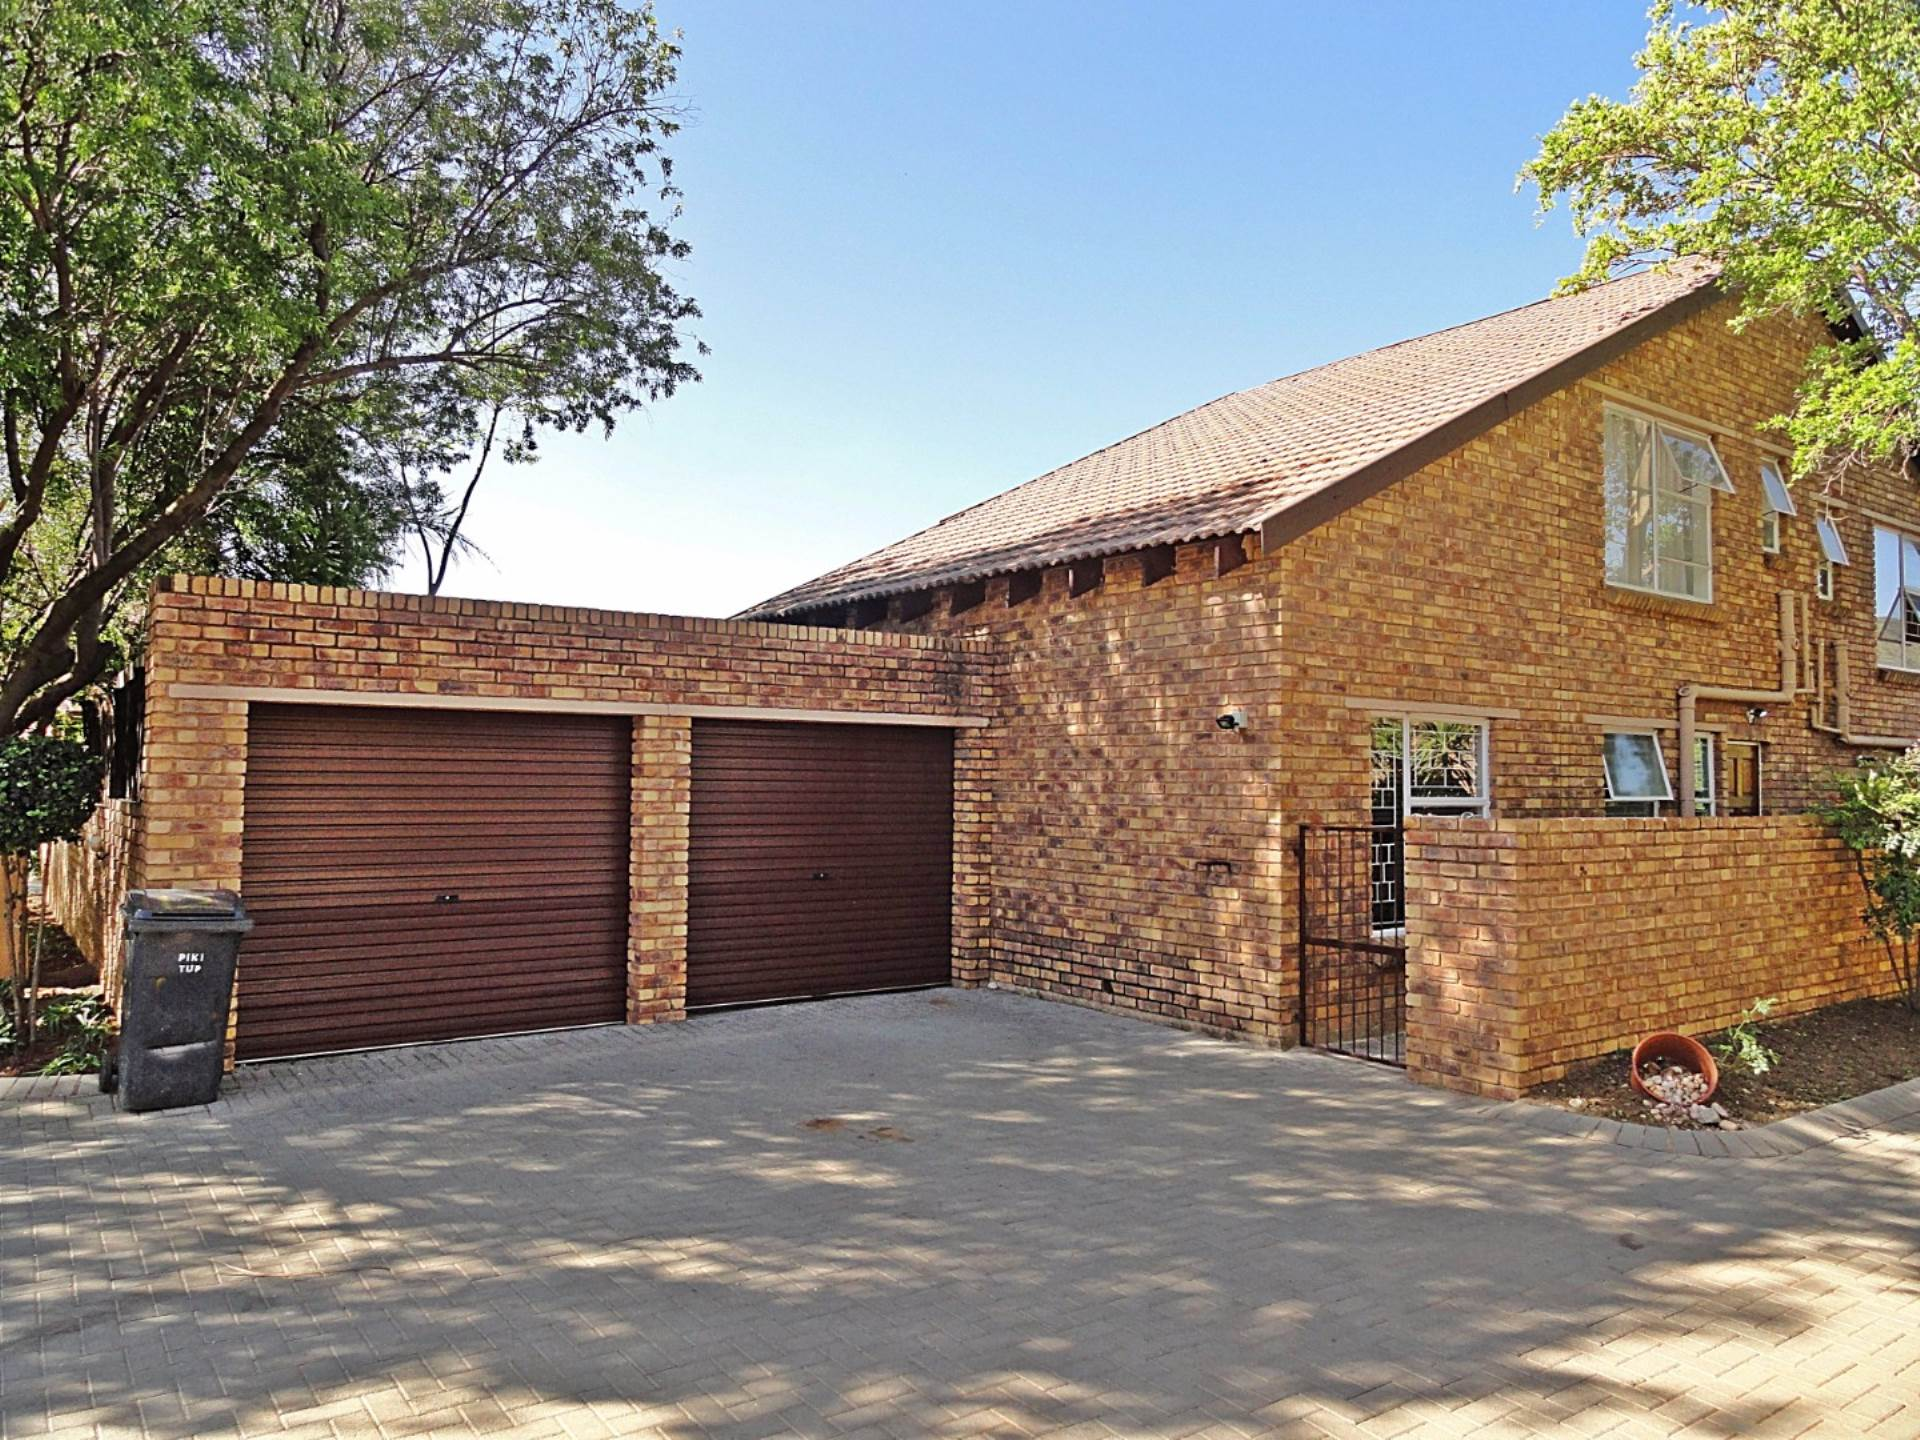 Townhouse To Rent In Wilgeheuwel